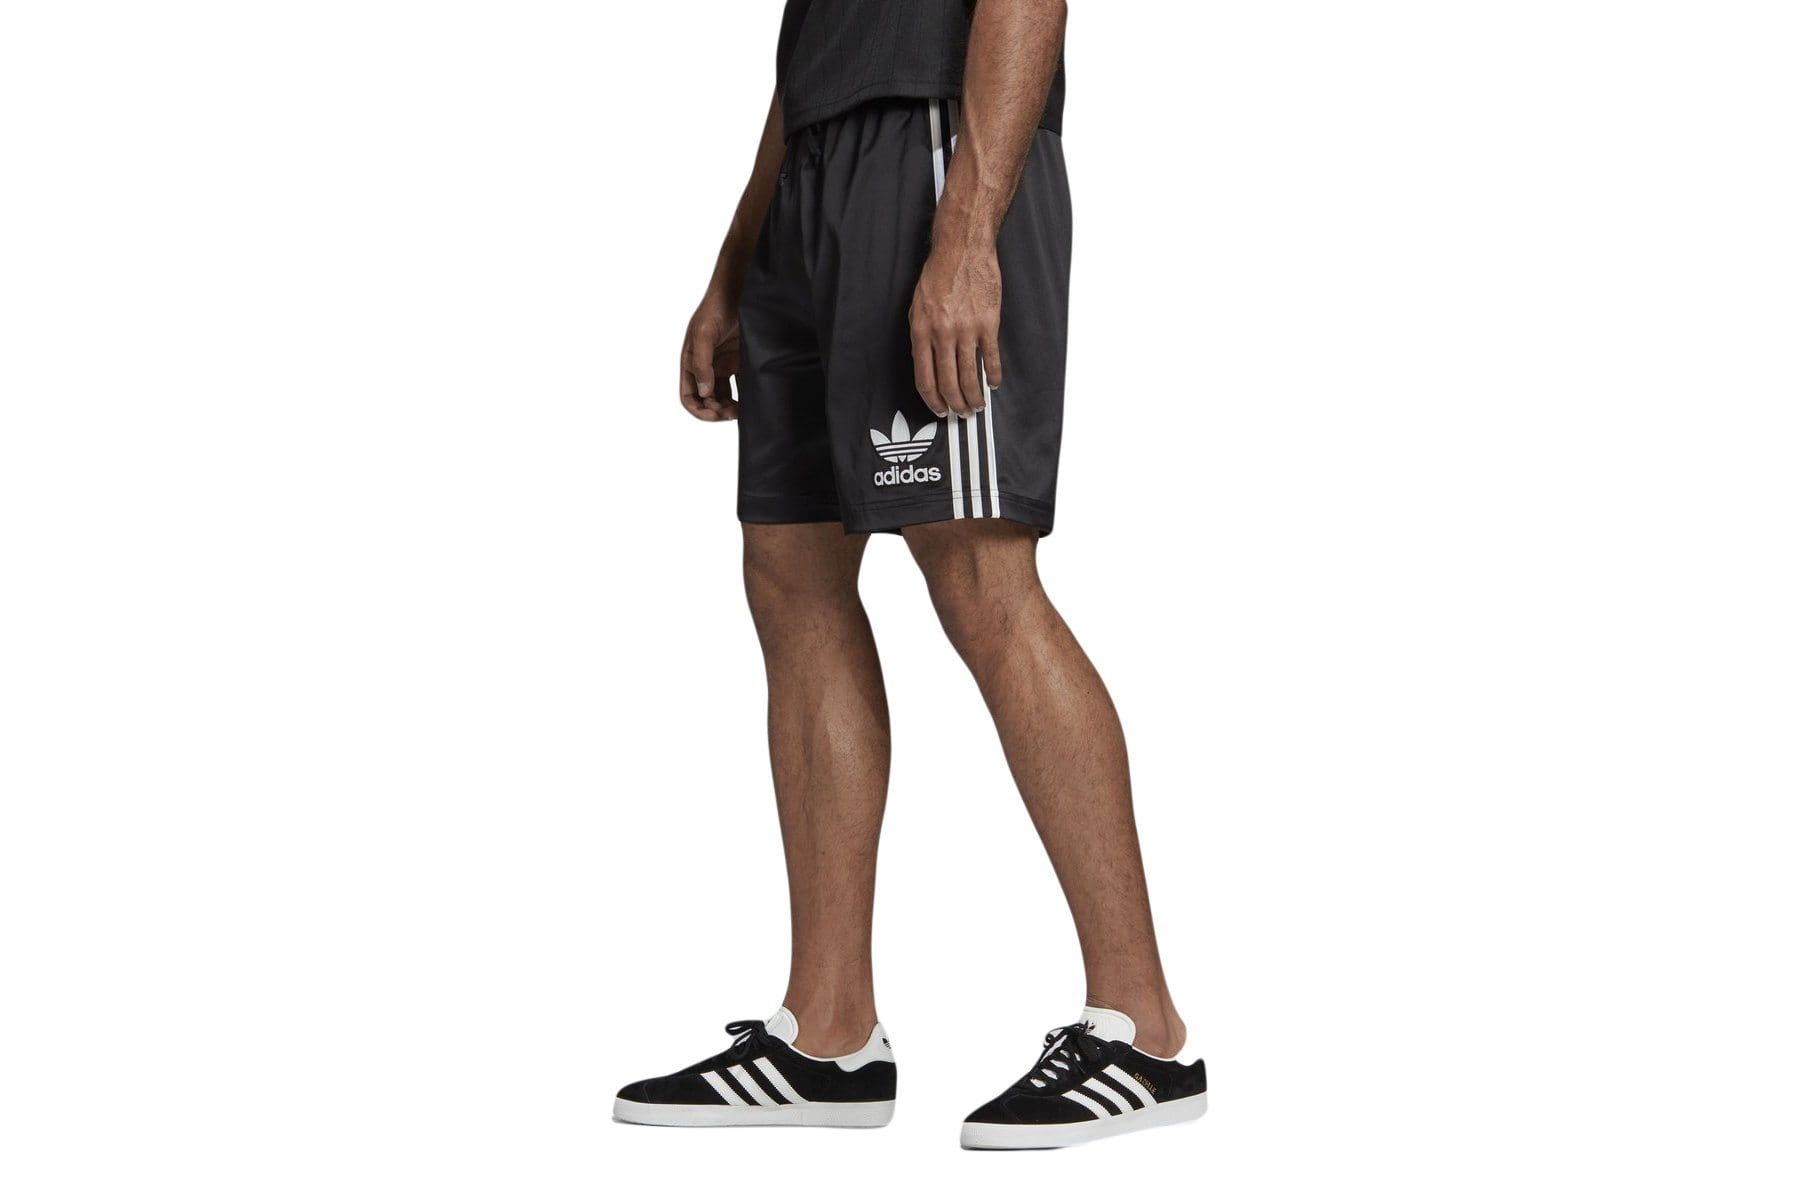 ADIDAS SATIN SHORT - DV1618 MENS SOFTGOODS ADIDAS